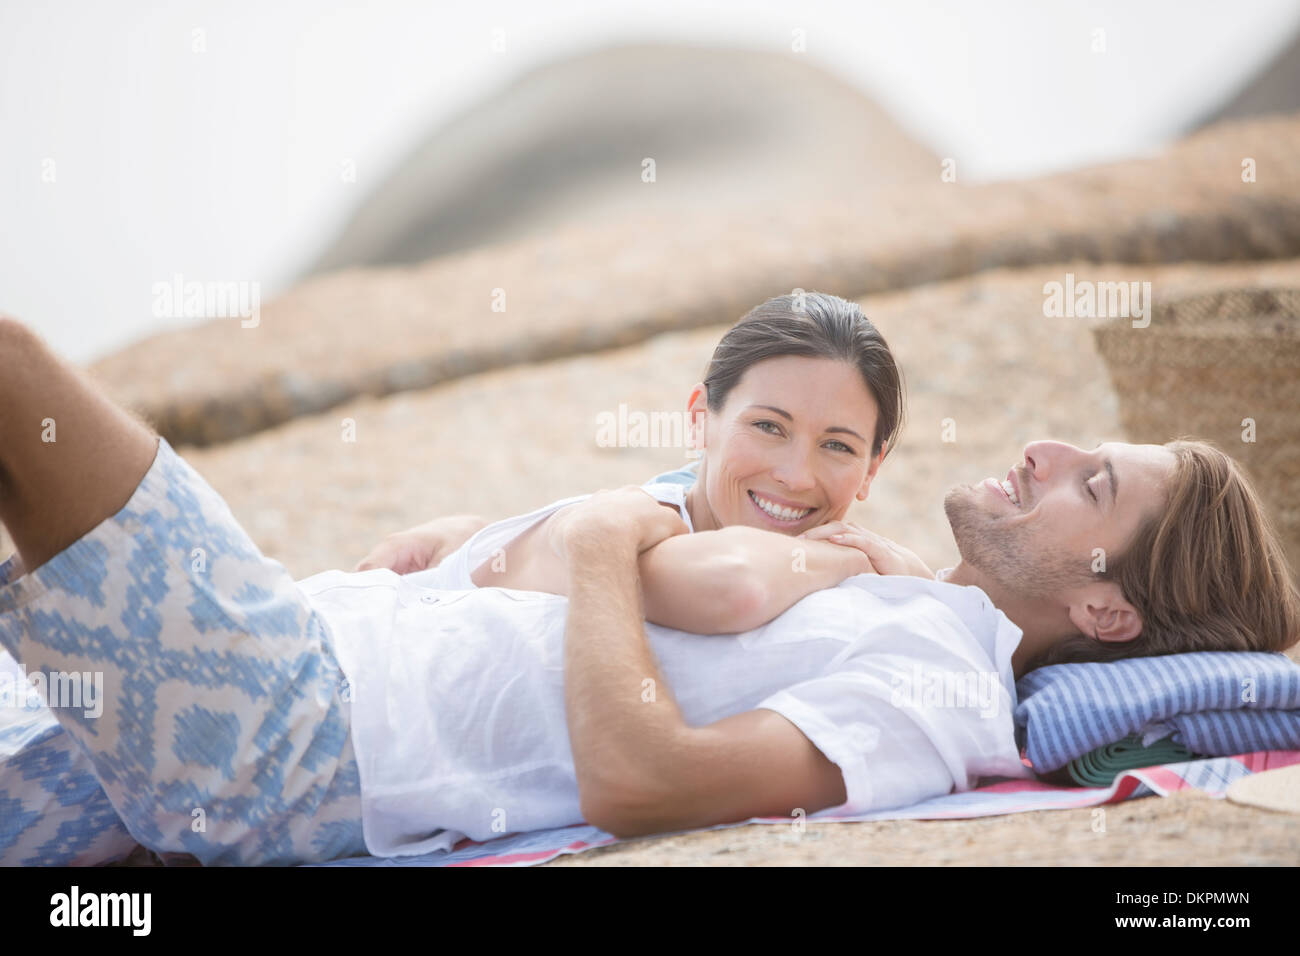 Couple relaxing on beach together - Stock Image